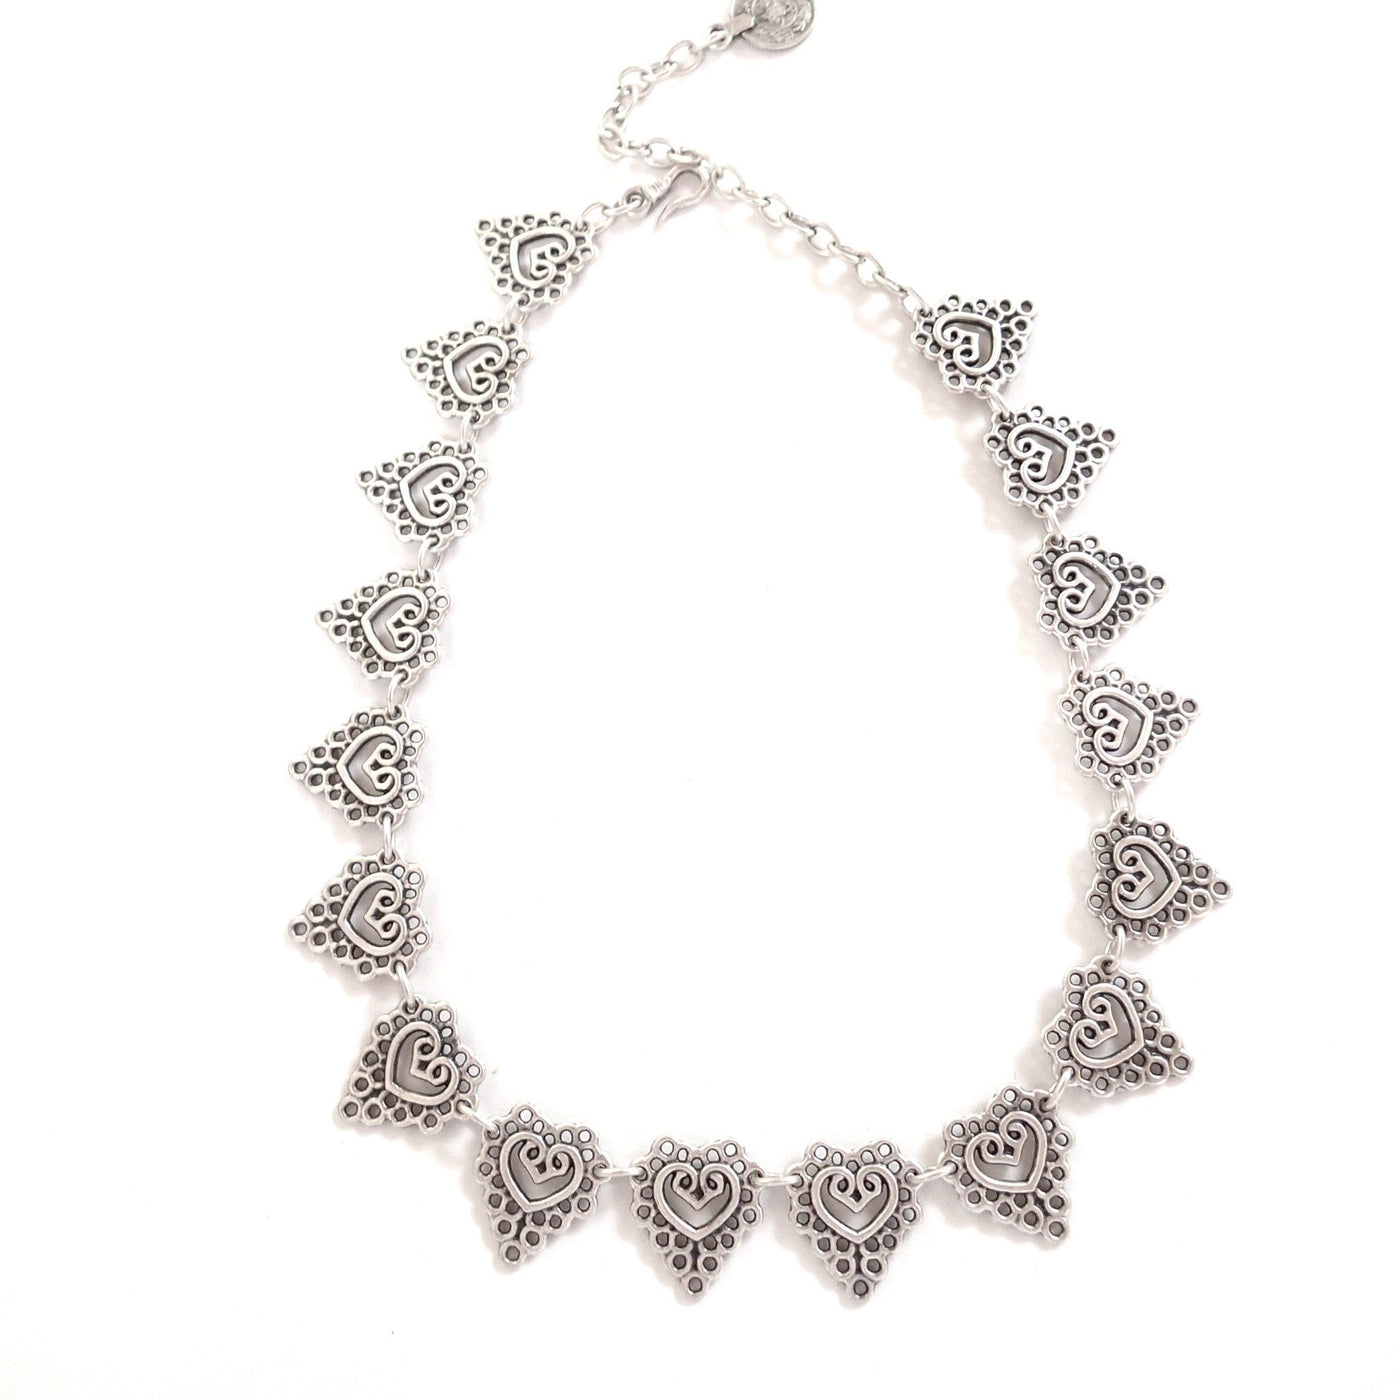 Balden necklace - Celeste Twikler